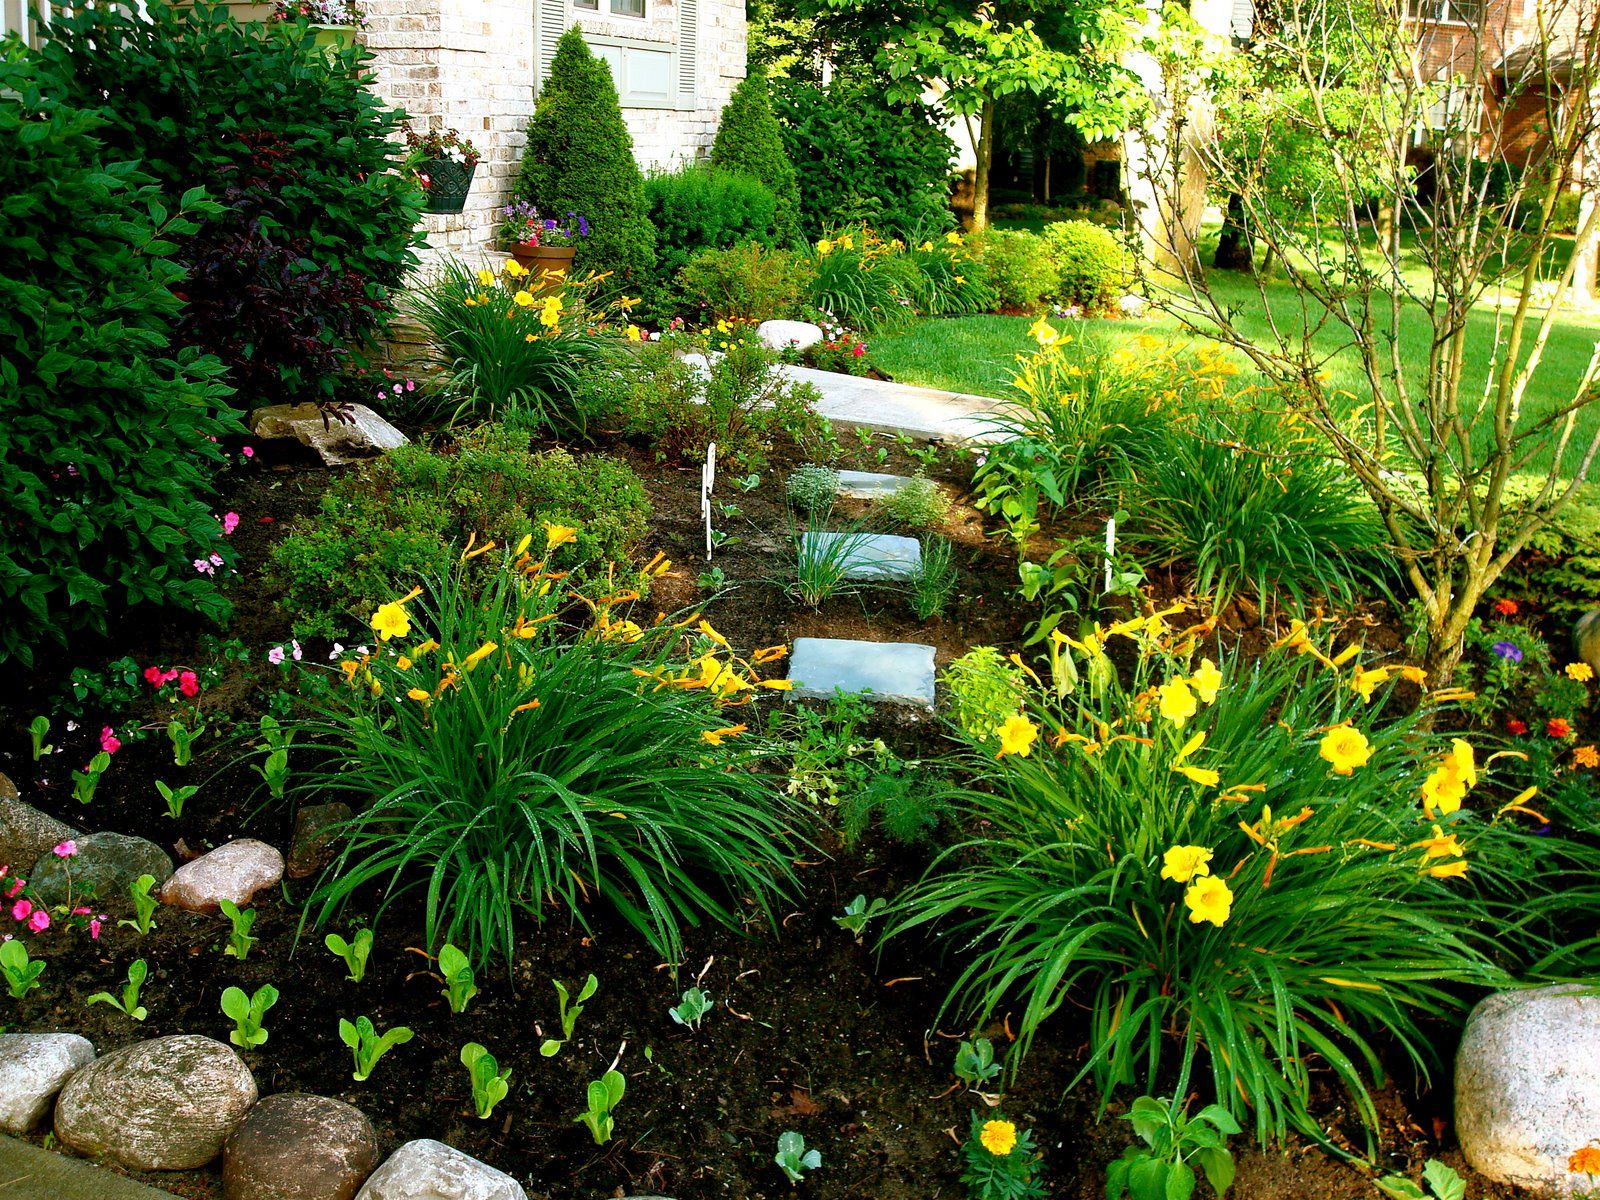 lovable front yard landscaping north texas with front yard landscaping plants shrubs garden. Black Bedroom Furniture Sets. Home Design Ideas